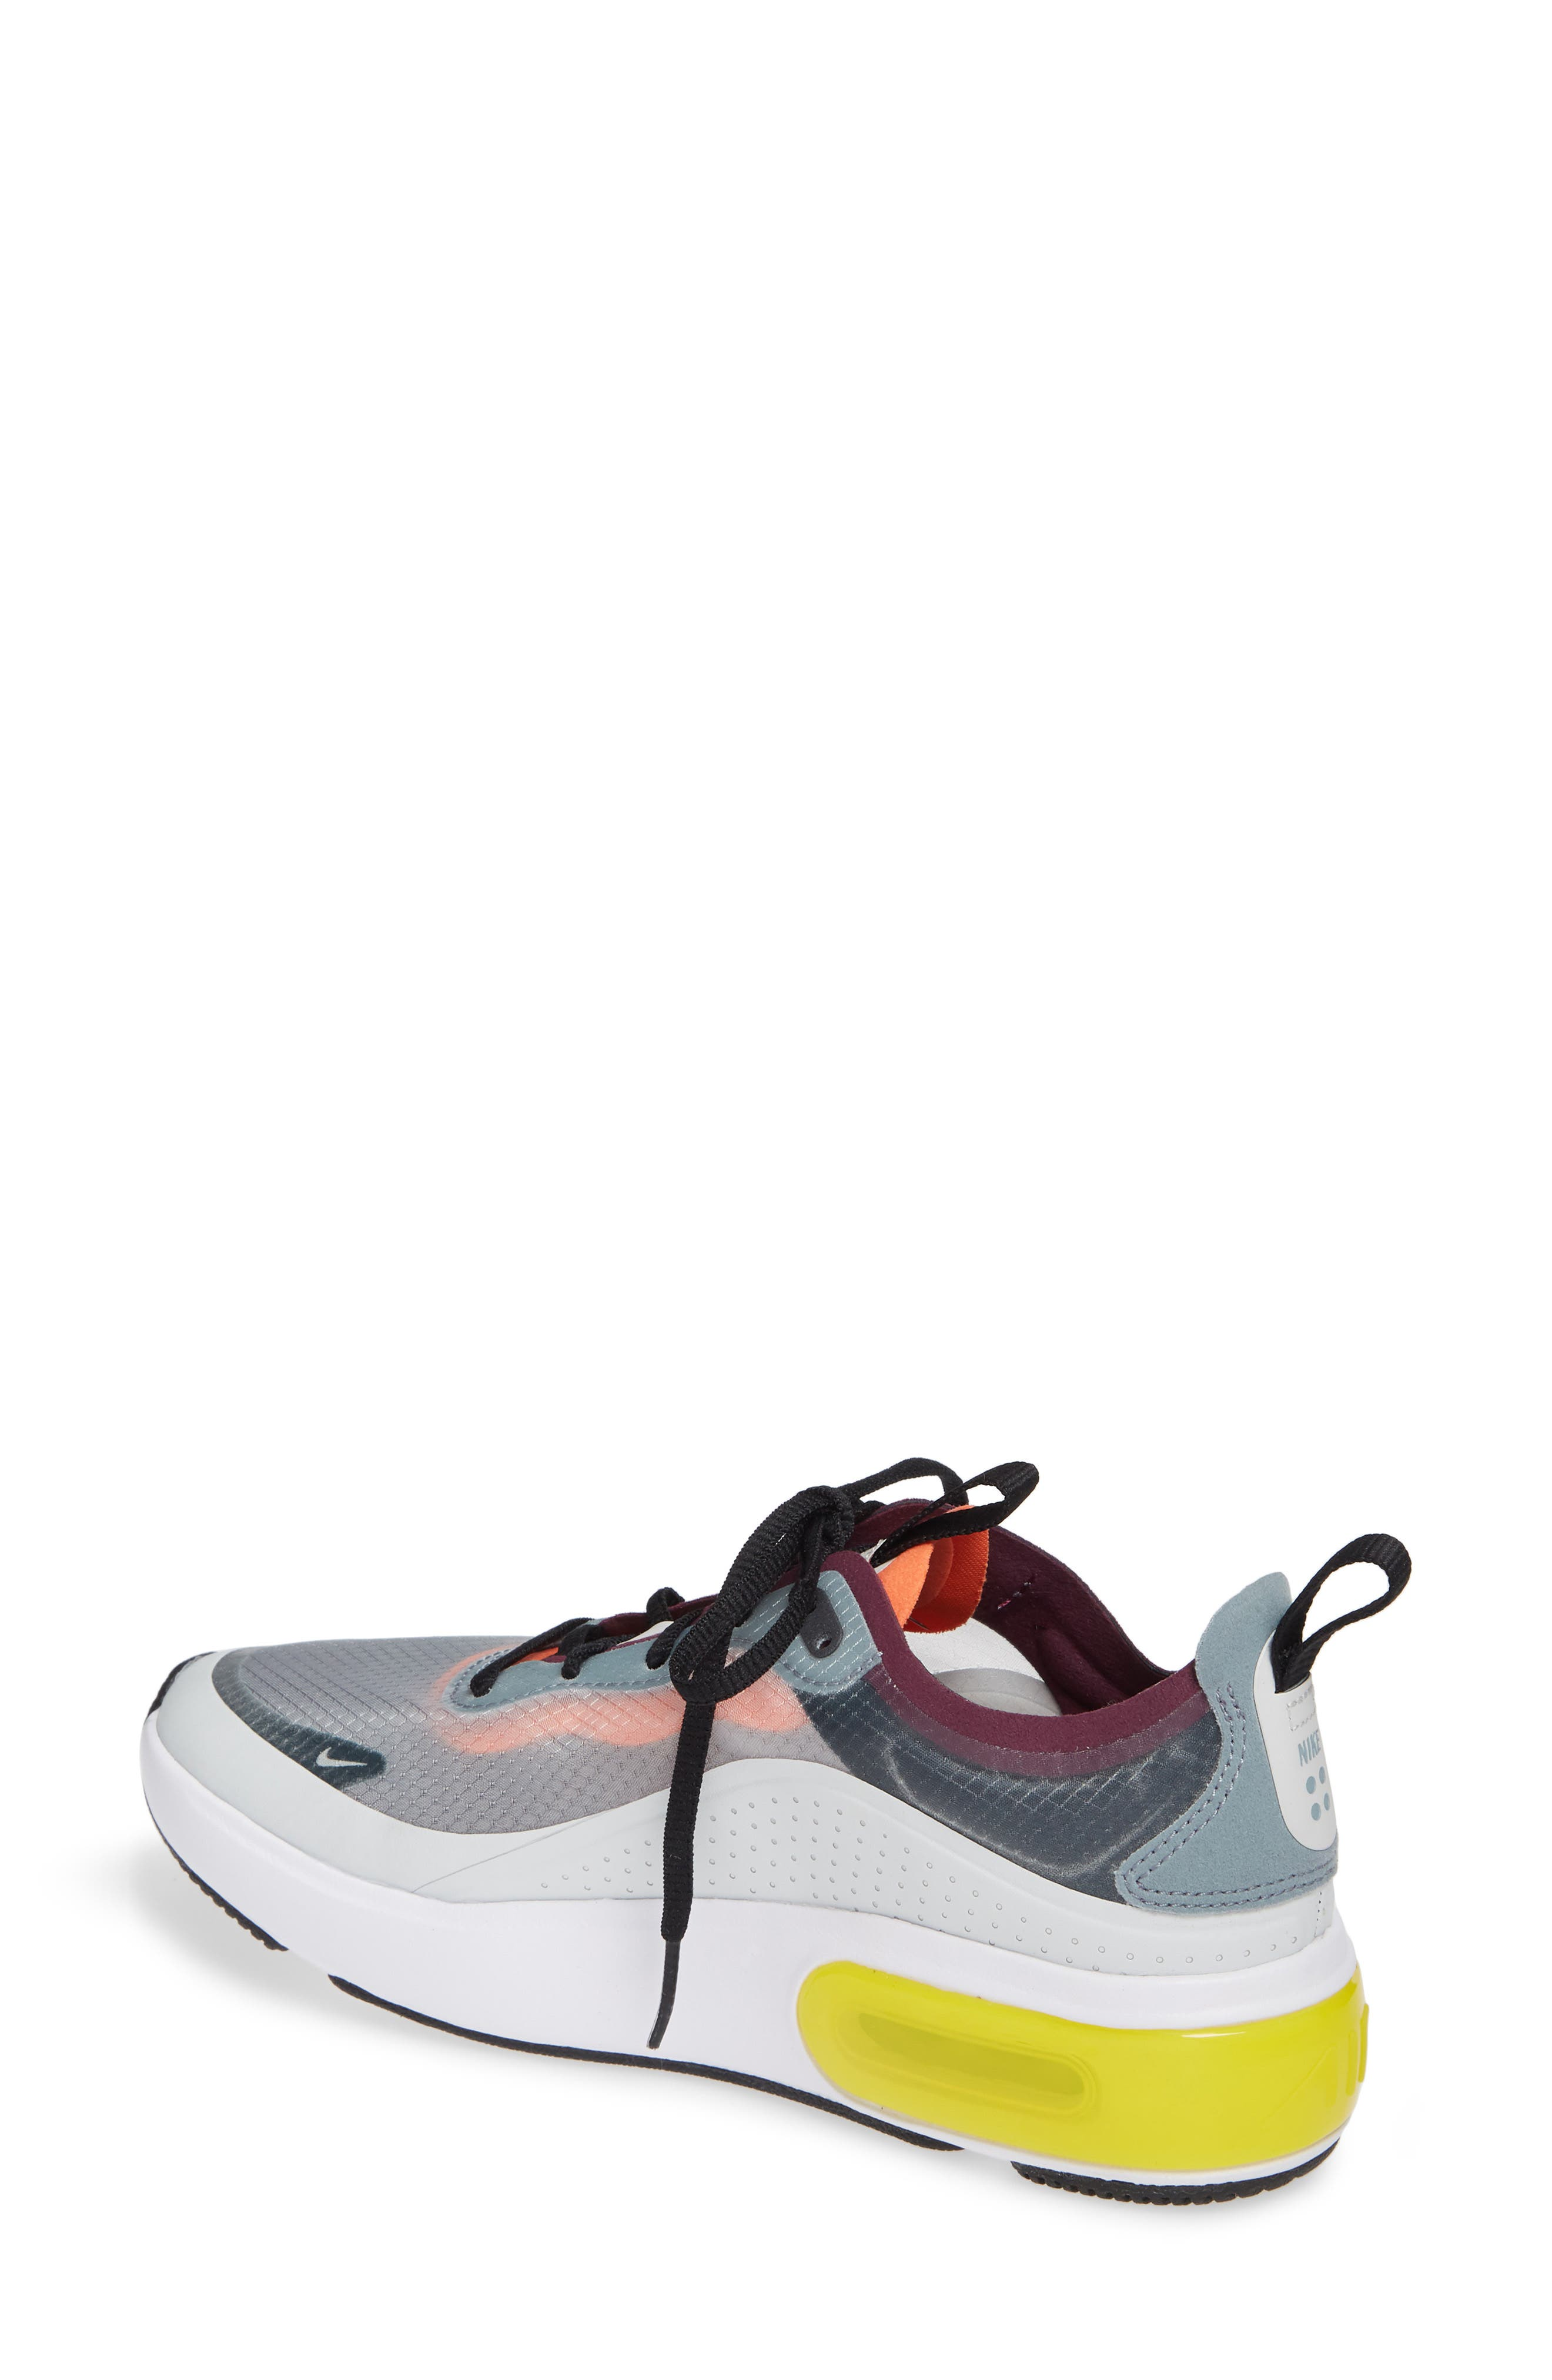 Air Max DIA SE Running Shoe,                             Alternate thumbnail 2, color,                             AVIATOR GREY/ BLACK/ OFF WHITE